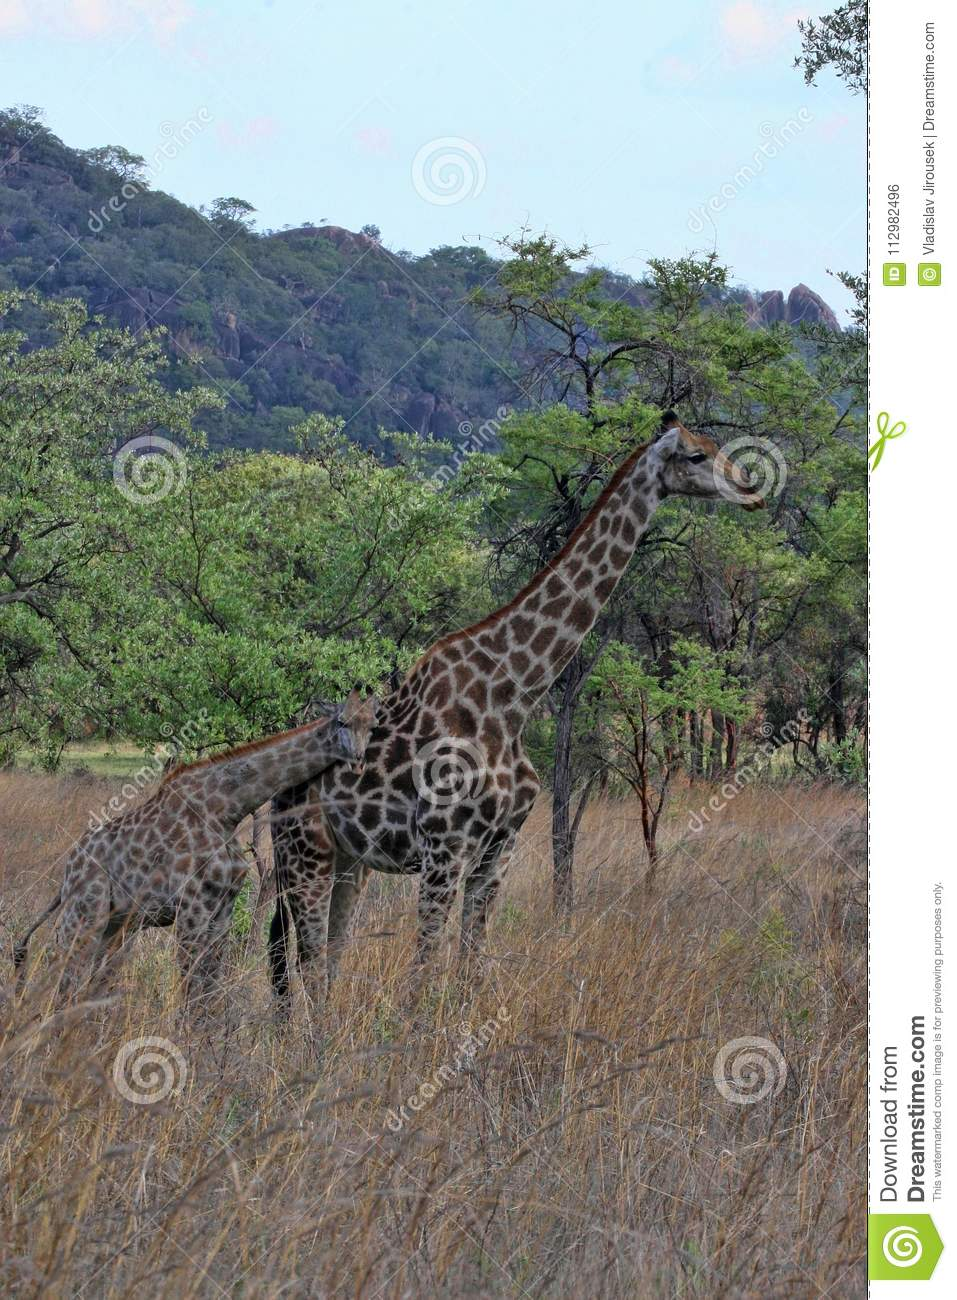 Female giraffes with youngsters, Matopos National Park, Zimbabwe